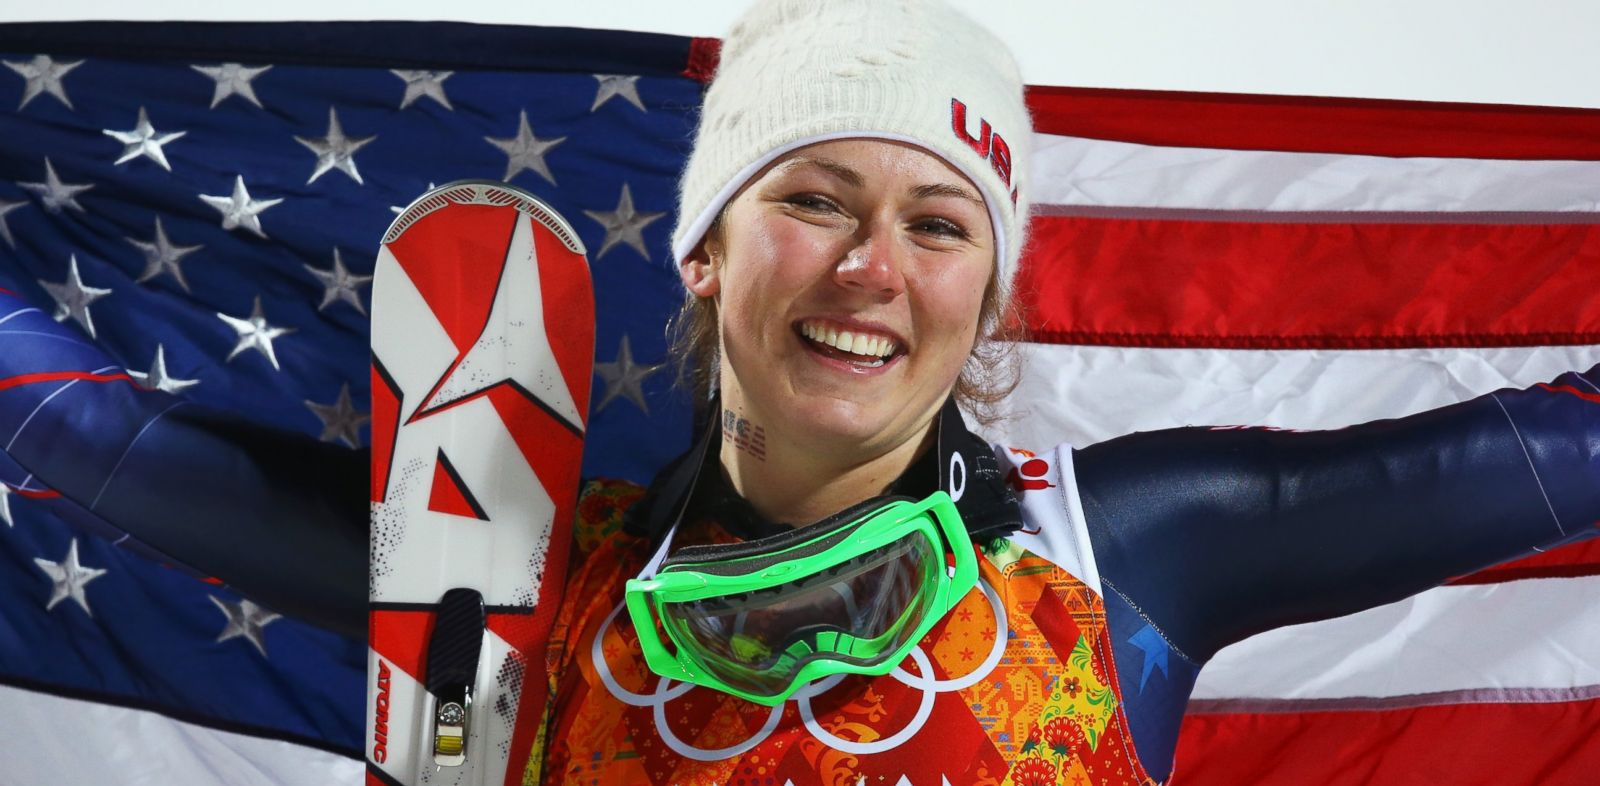 PHOTO: Gold medalist Mikaela Shiffrin of the U.S. celebrates during the flower ceremony for the Womens Slalom during day 14 of the Sochi 2014 Winter Olympics at Rosa Khutor Alpine Center, Feb. 21, 2014 in Sochi, Russia.